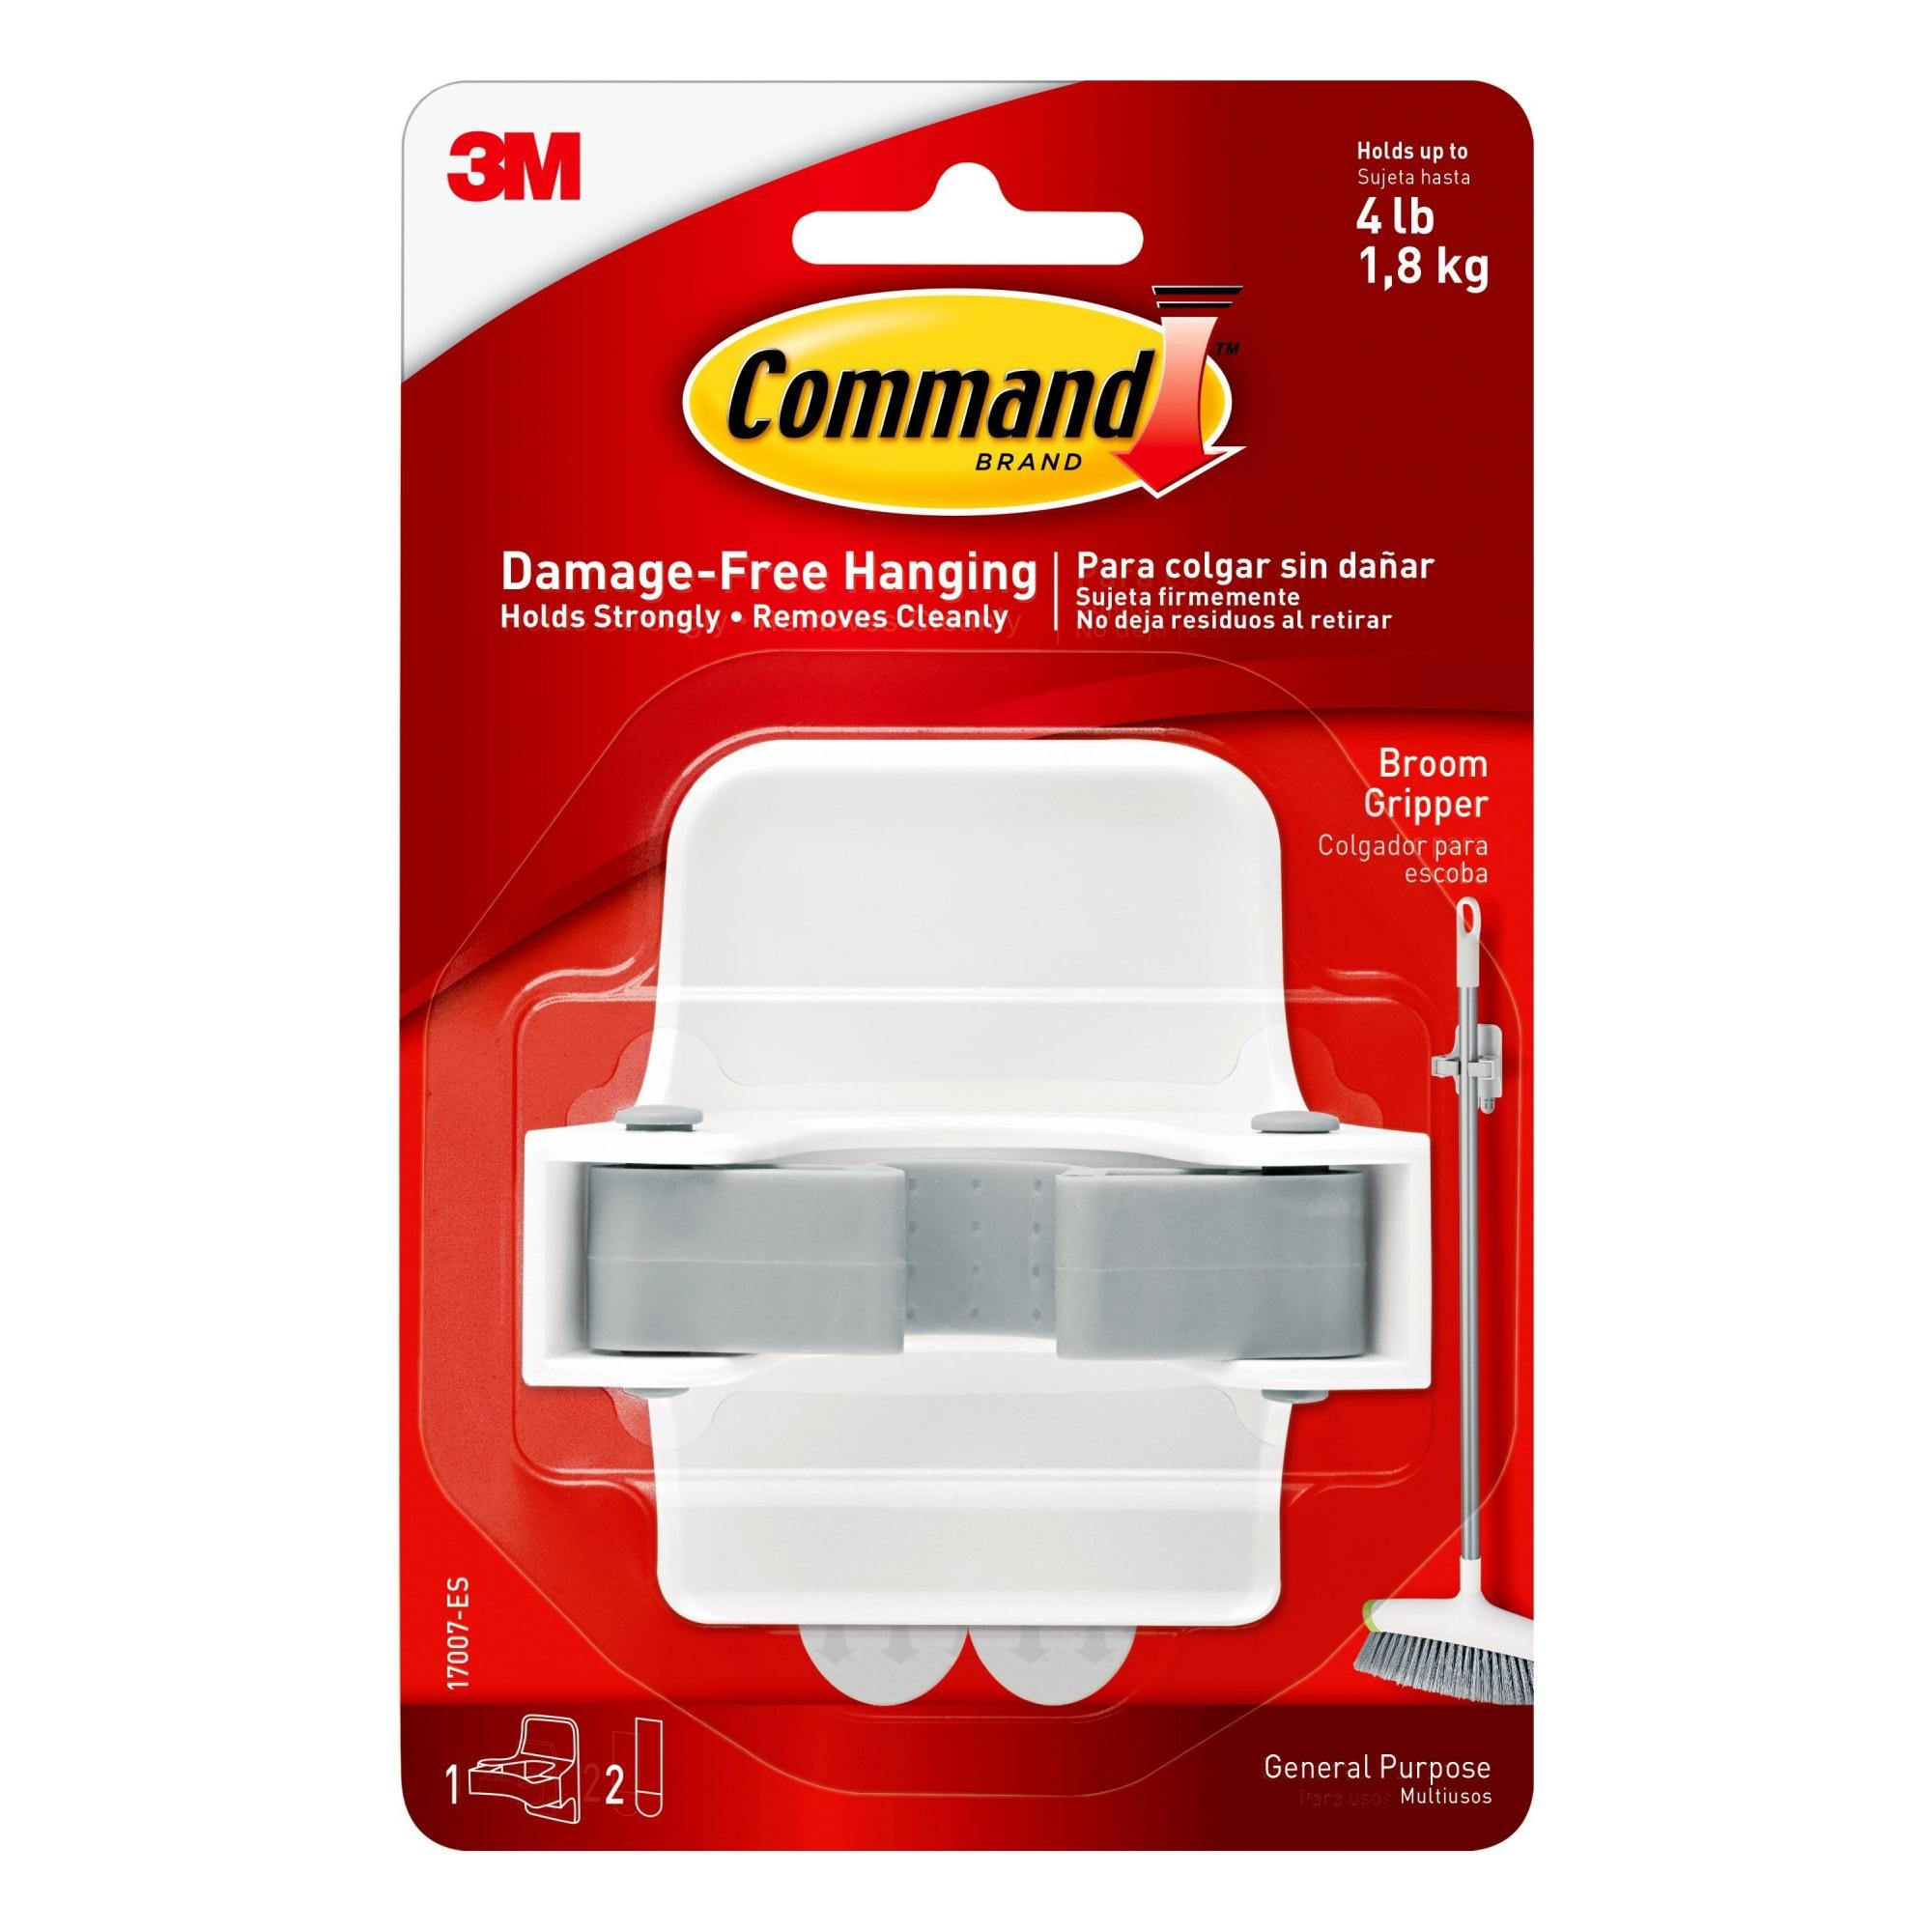 Command Broom Gripper, White and Grey, 1 Gripper, 2 Strips (Holds up to 4 lb)